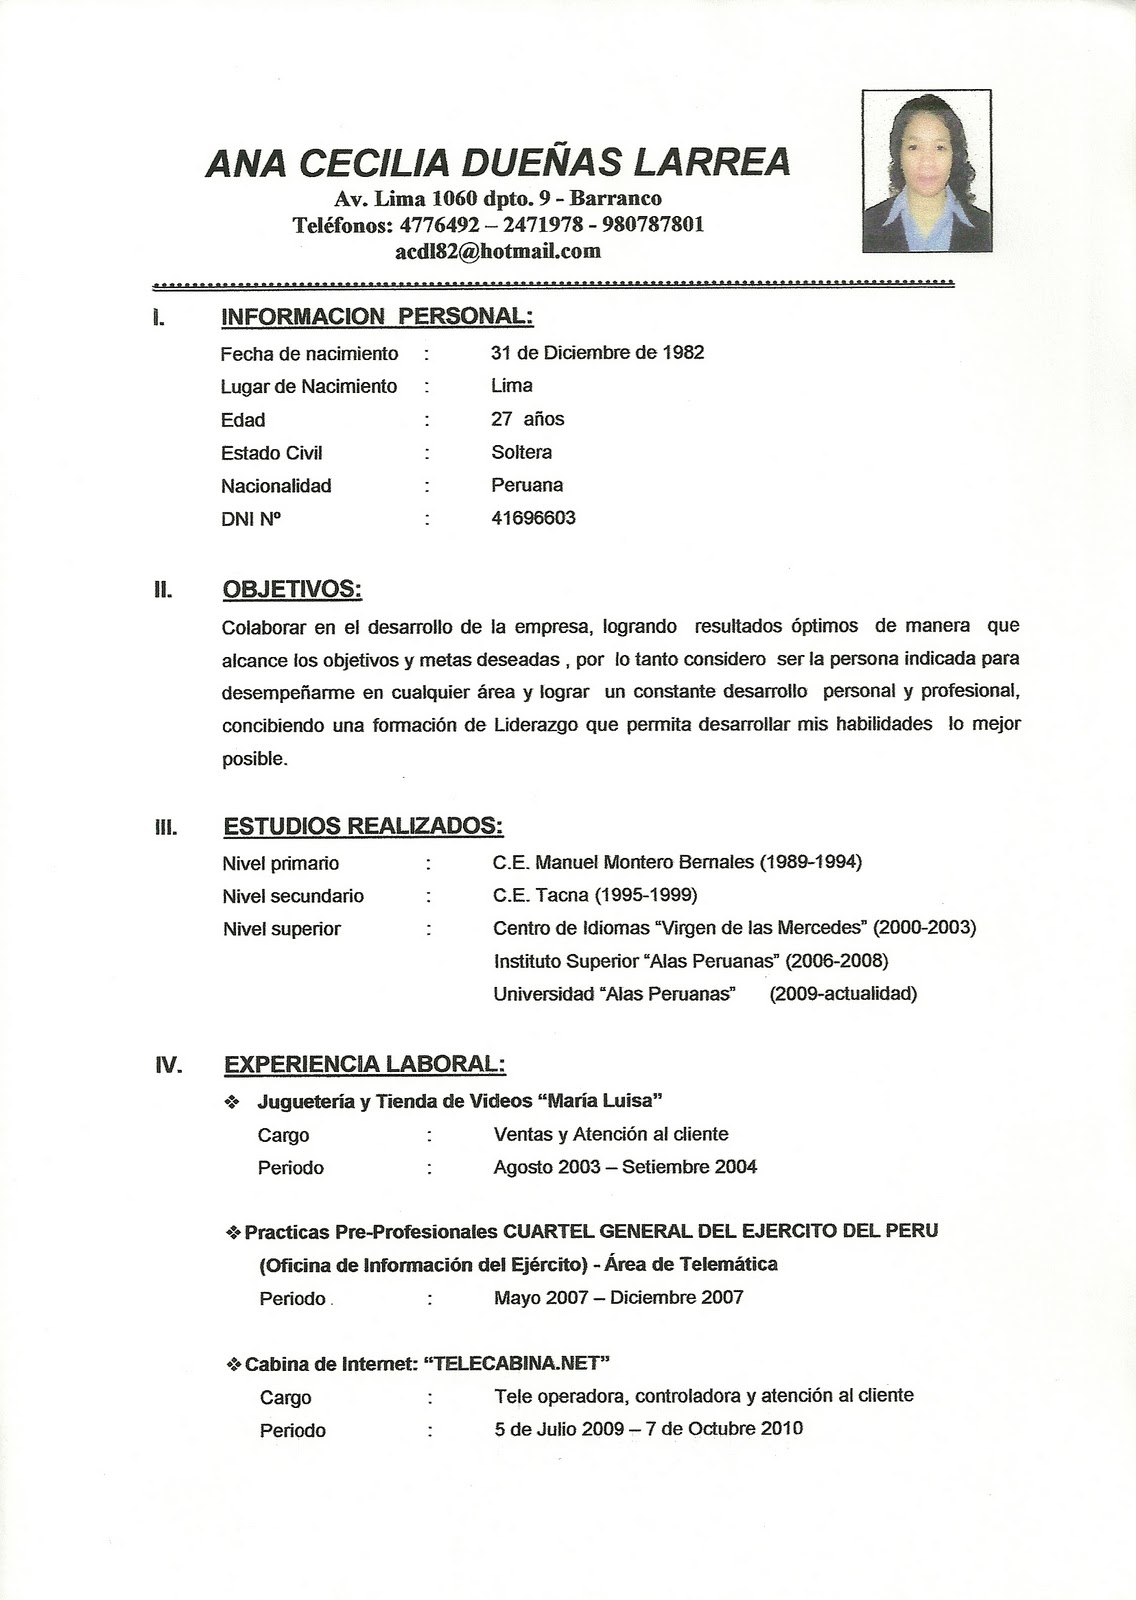 Cv Definition Meaning Curriculum Vitae Resume Curriculum Vitae Meaning In The ... - what is resume